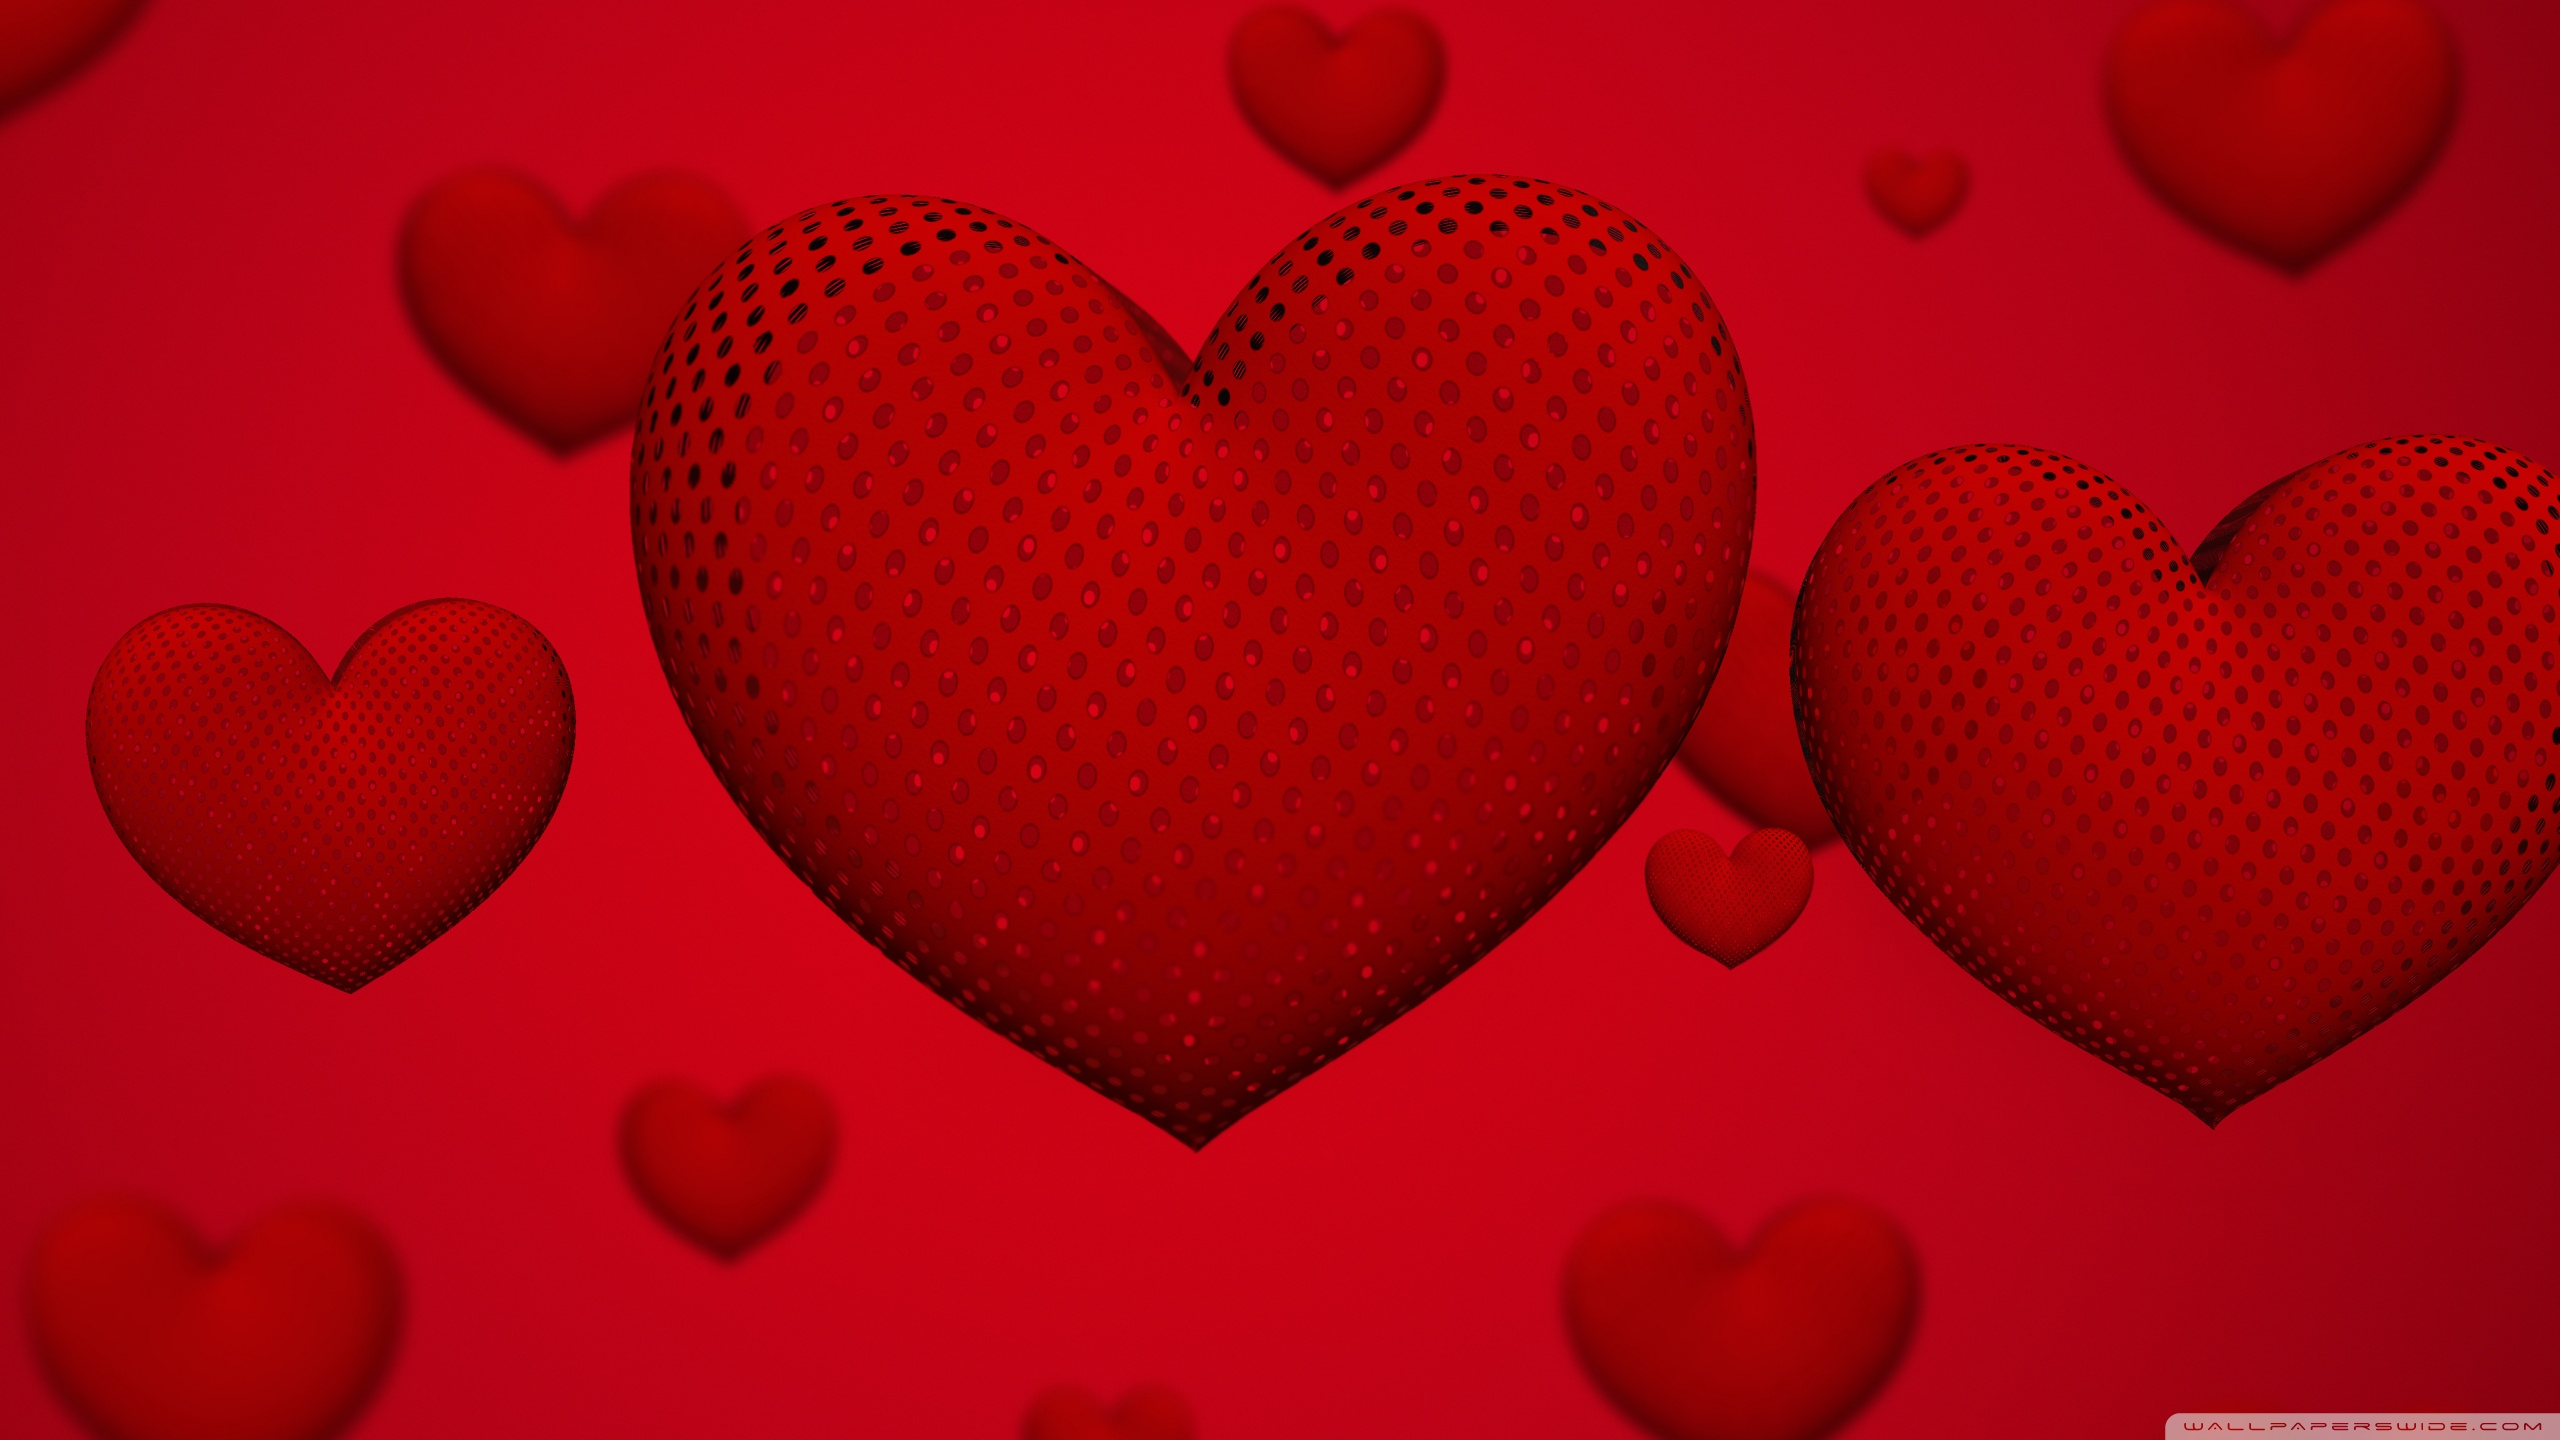 Valentines Day Hearts Ultra HD Desktop Background Wallpaper for 2560x1440